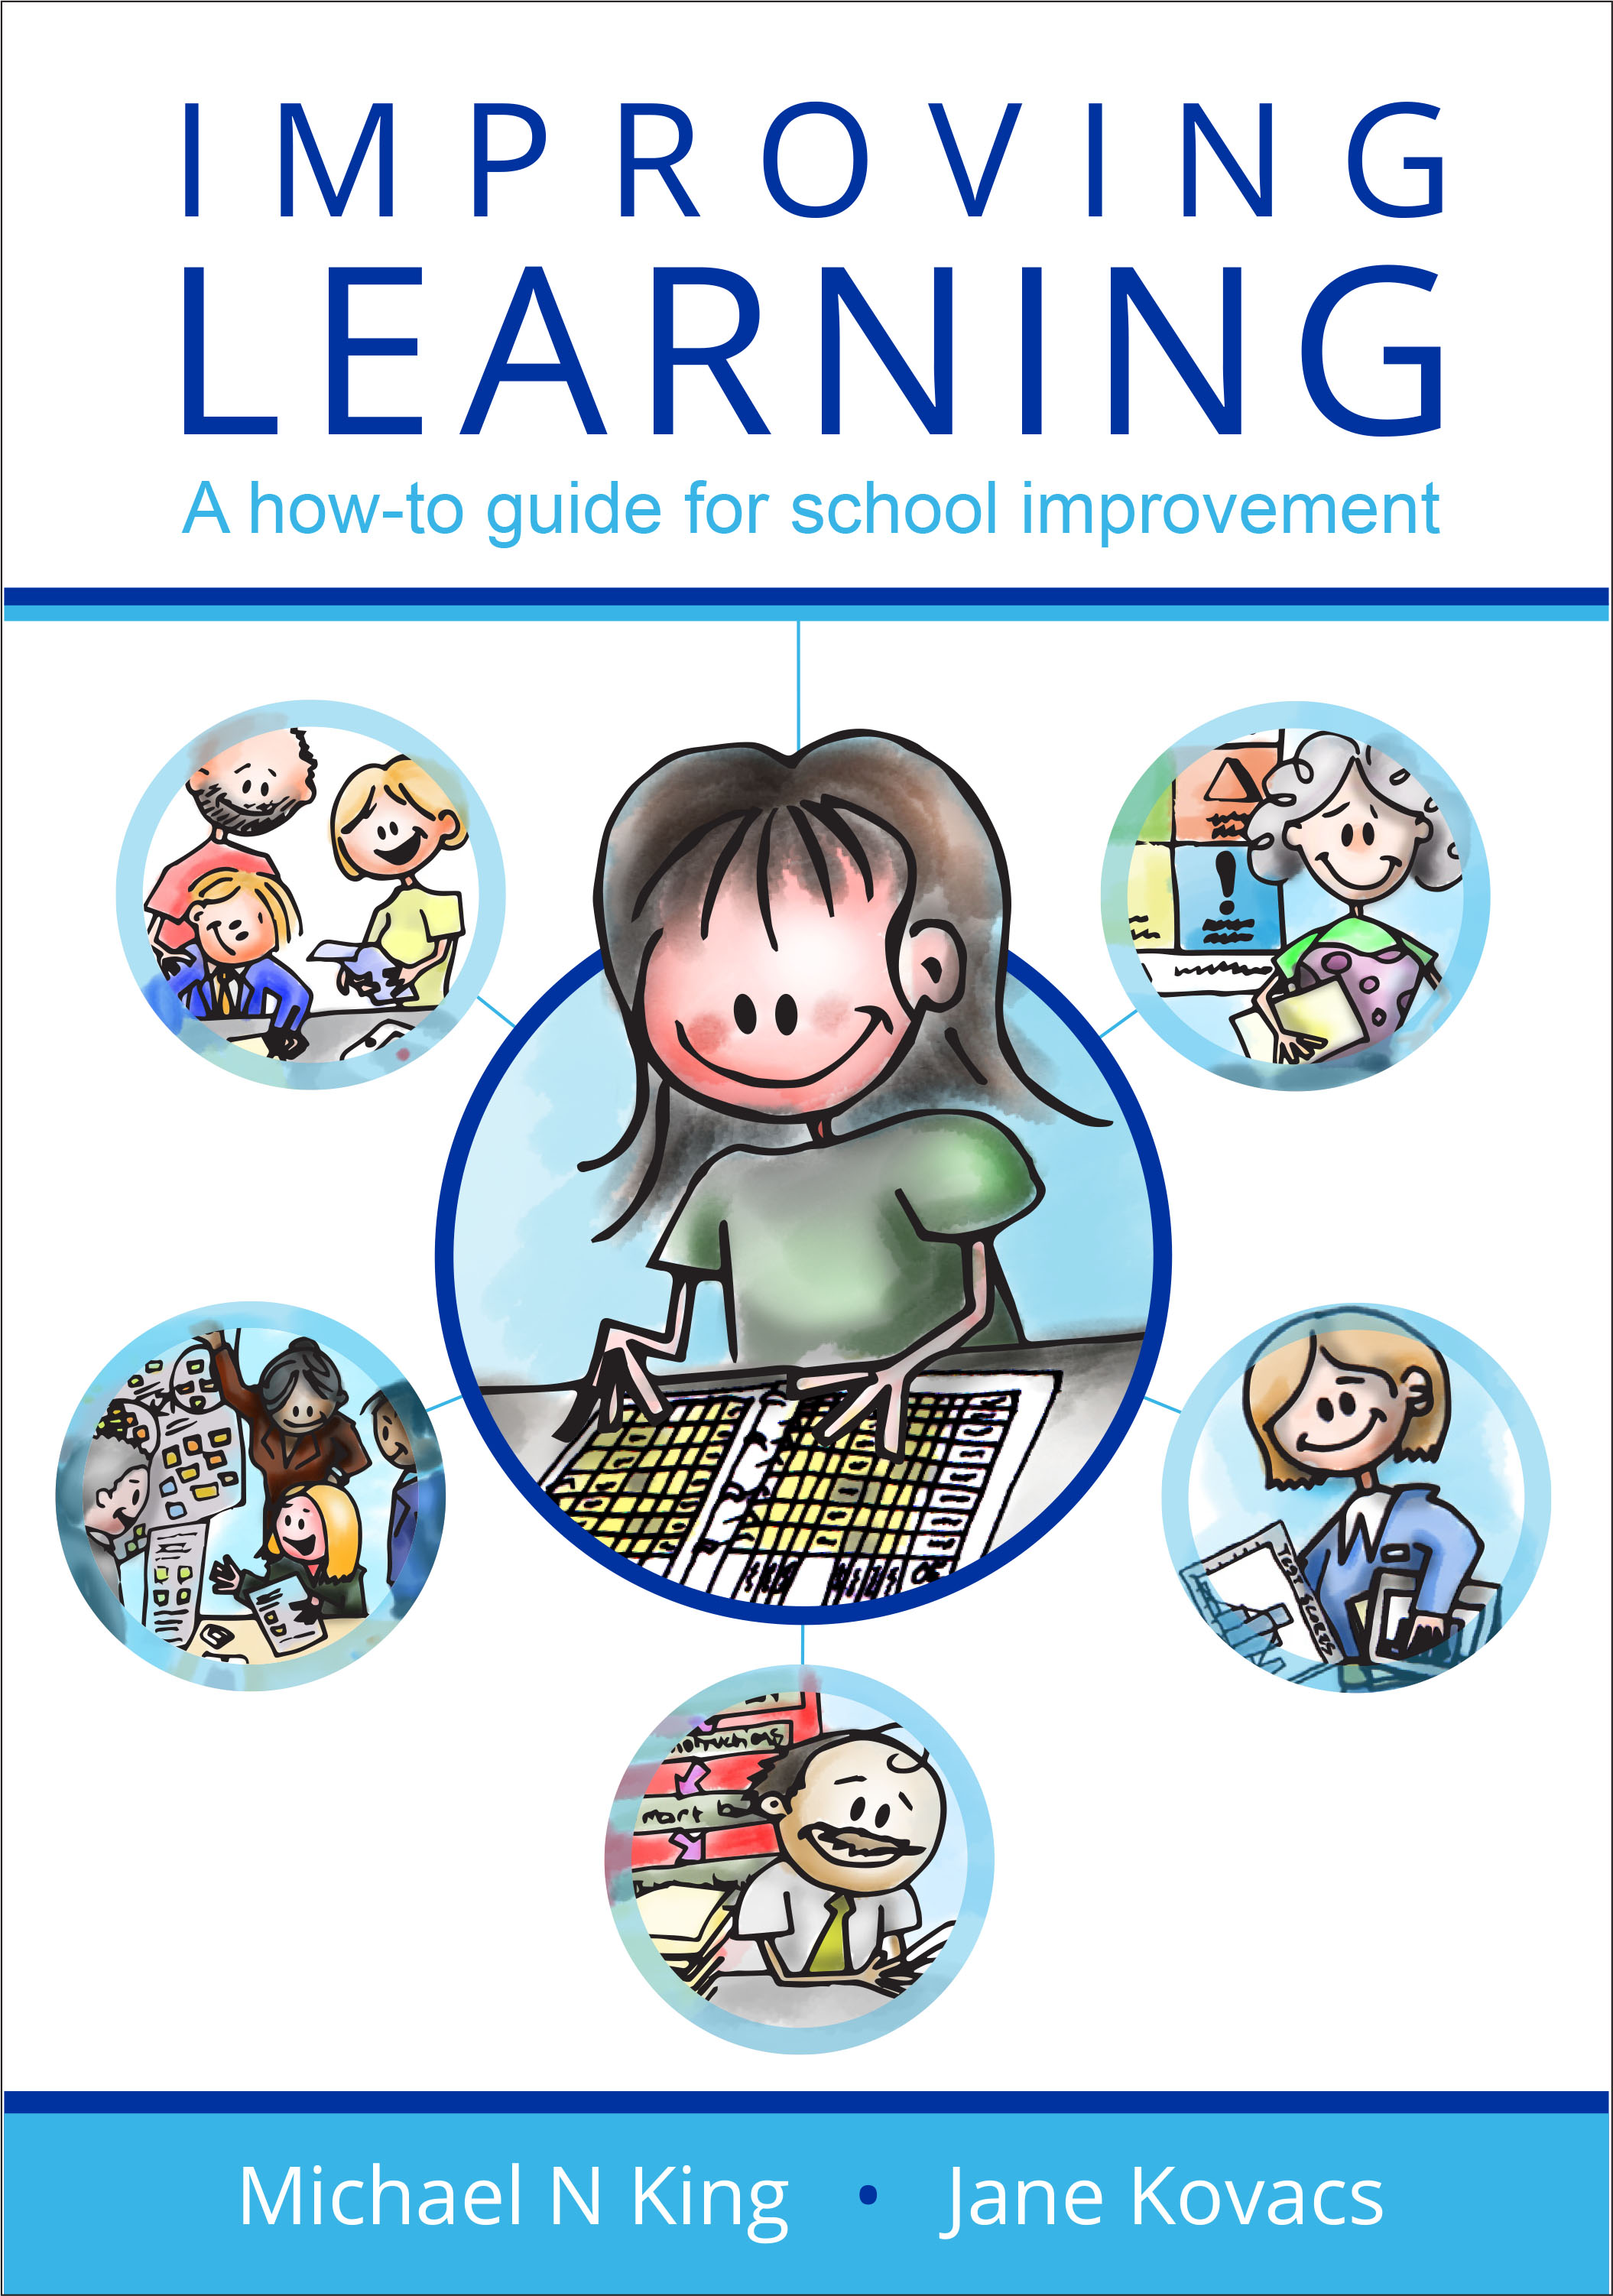 ImprovingLearningCover